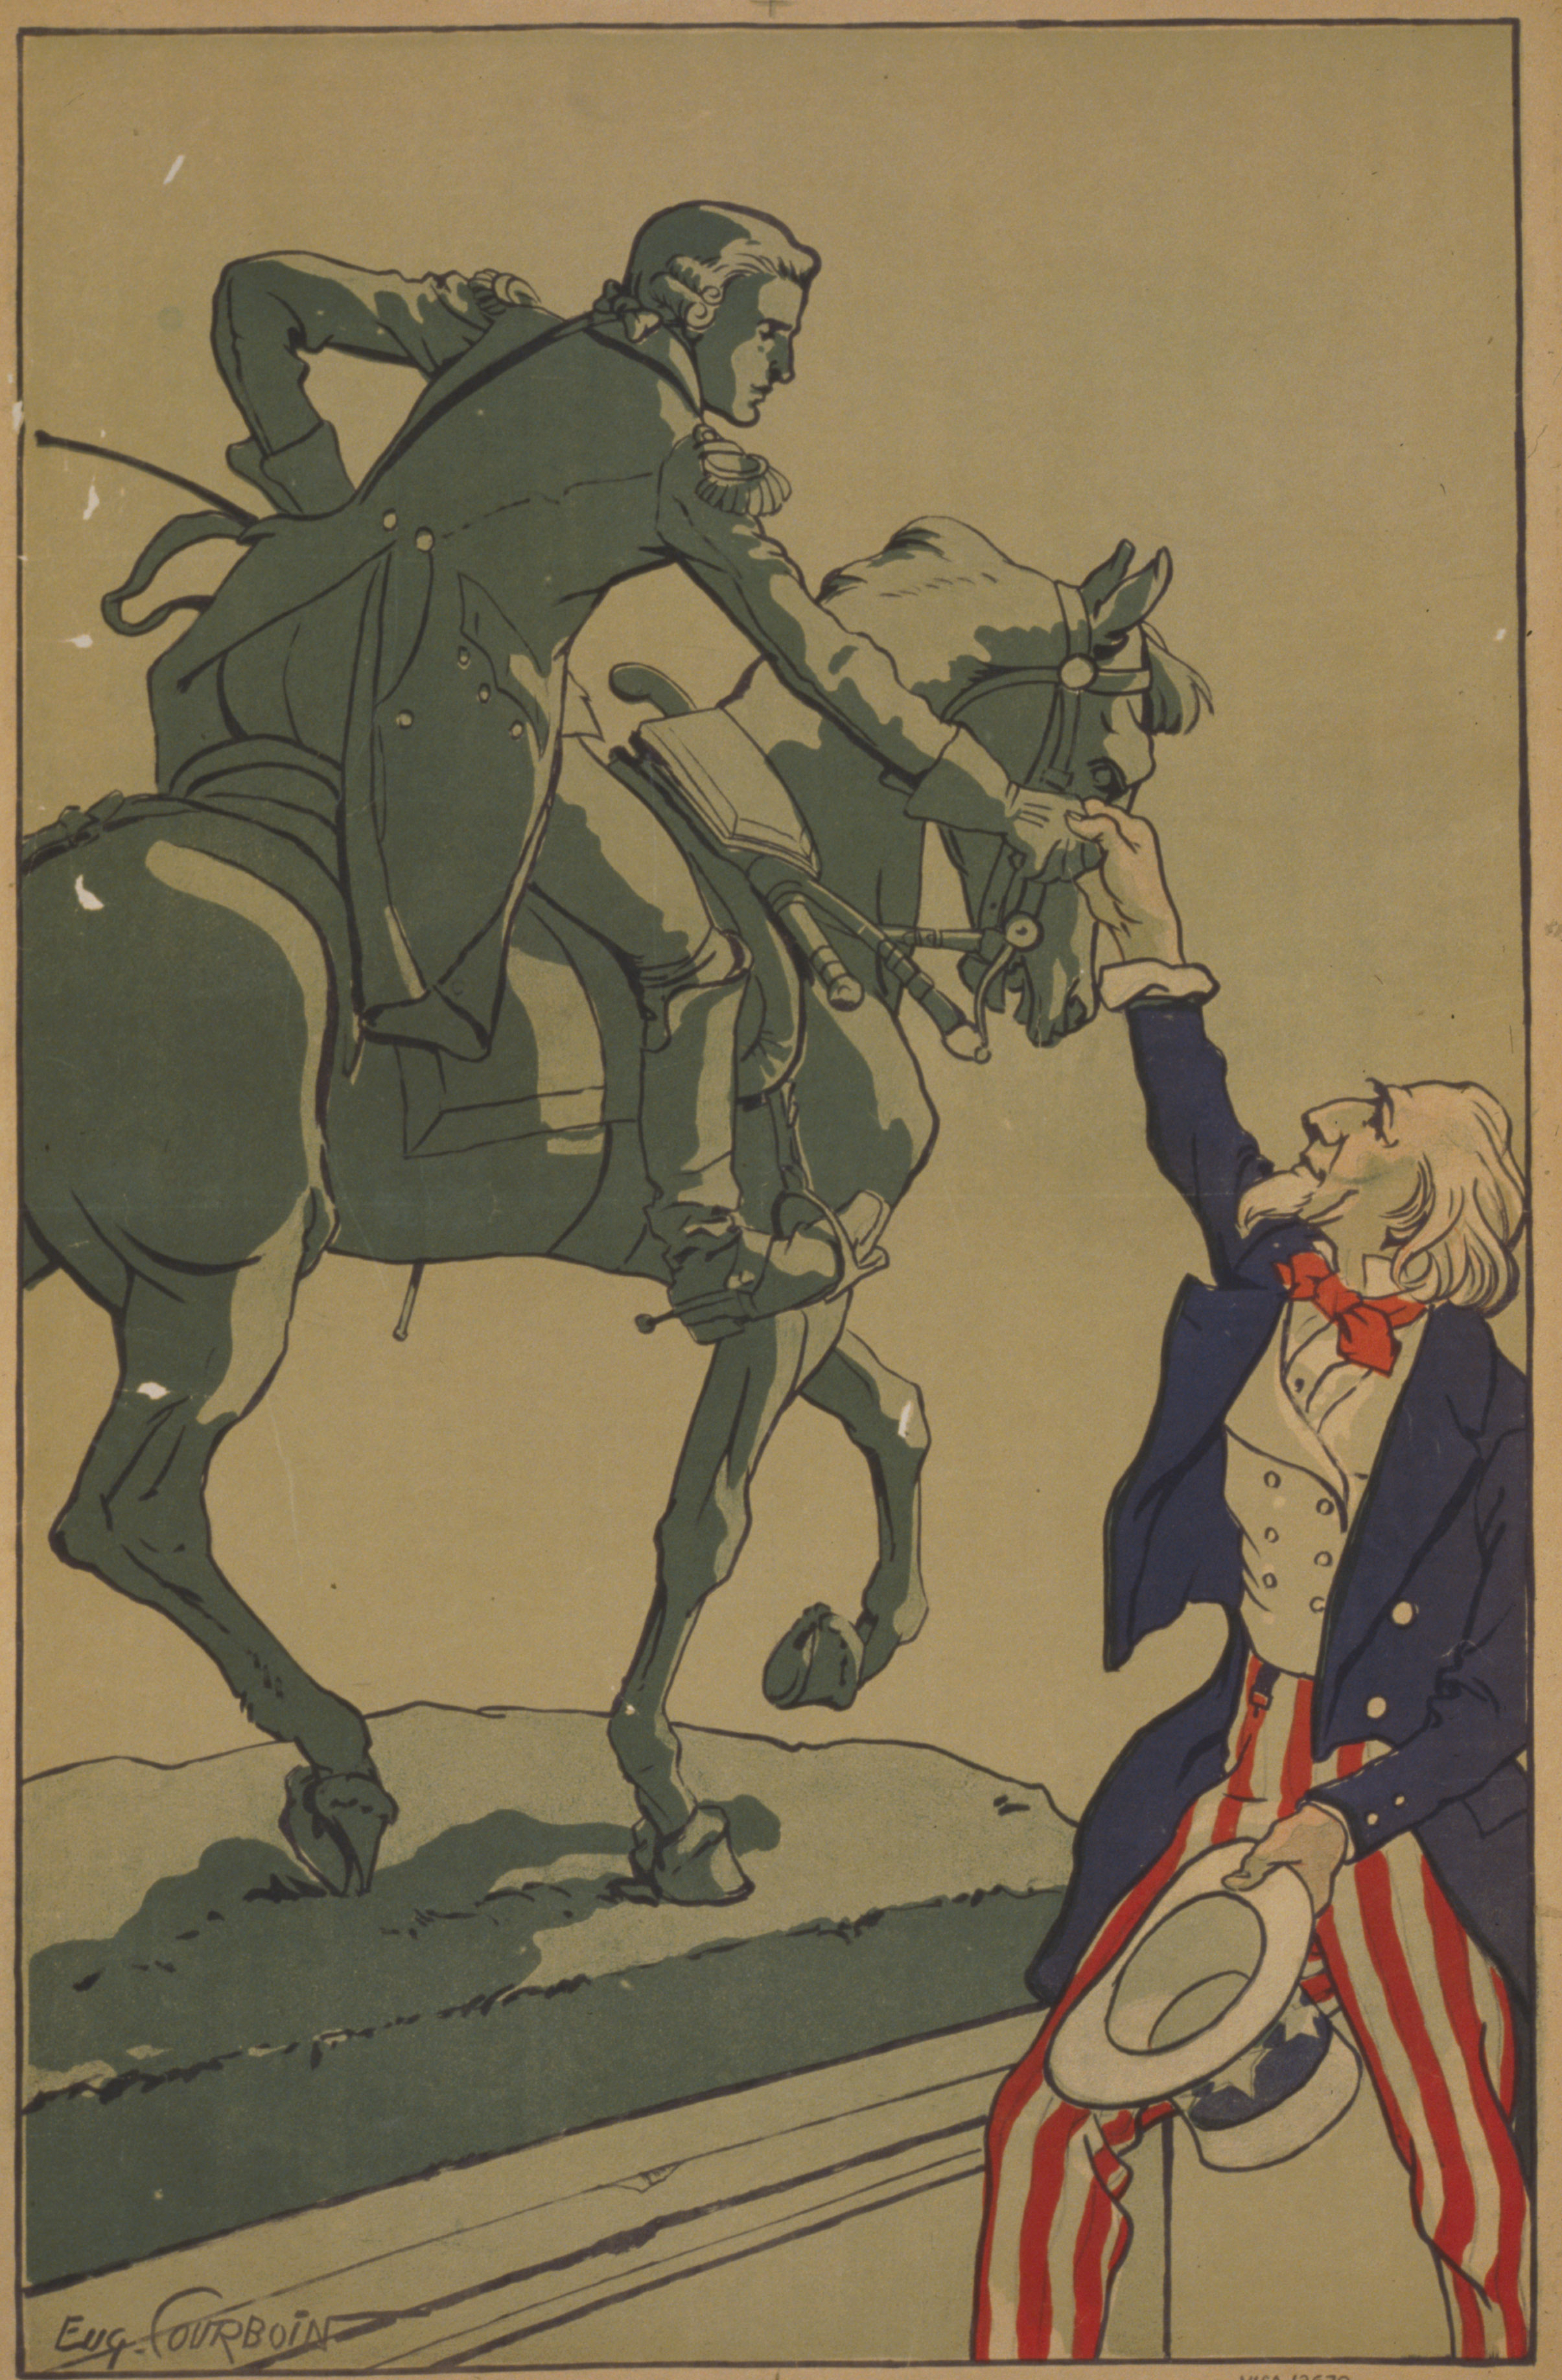 Lafayette, we are here. Uncle Sam shakes hands with the Marquis de Lafayette in this 1917 French poster produced around the time the United States entered WWI. Library of Congress photo